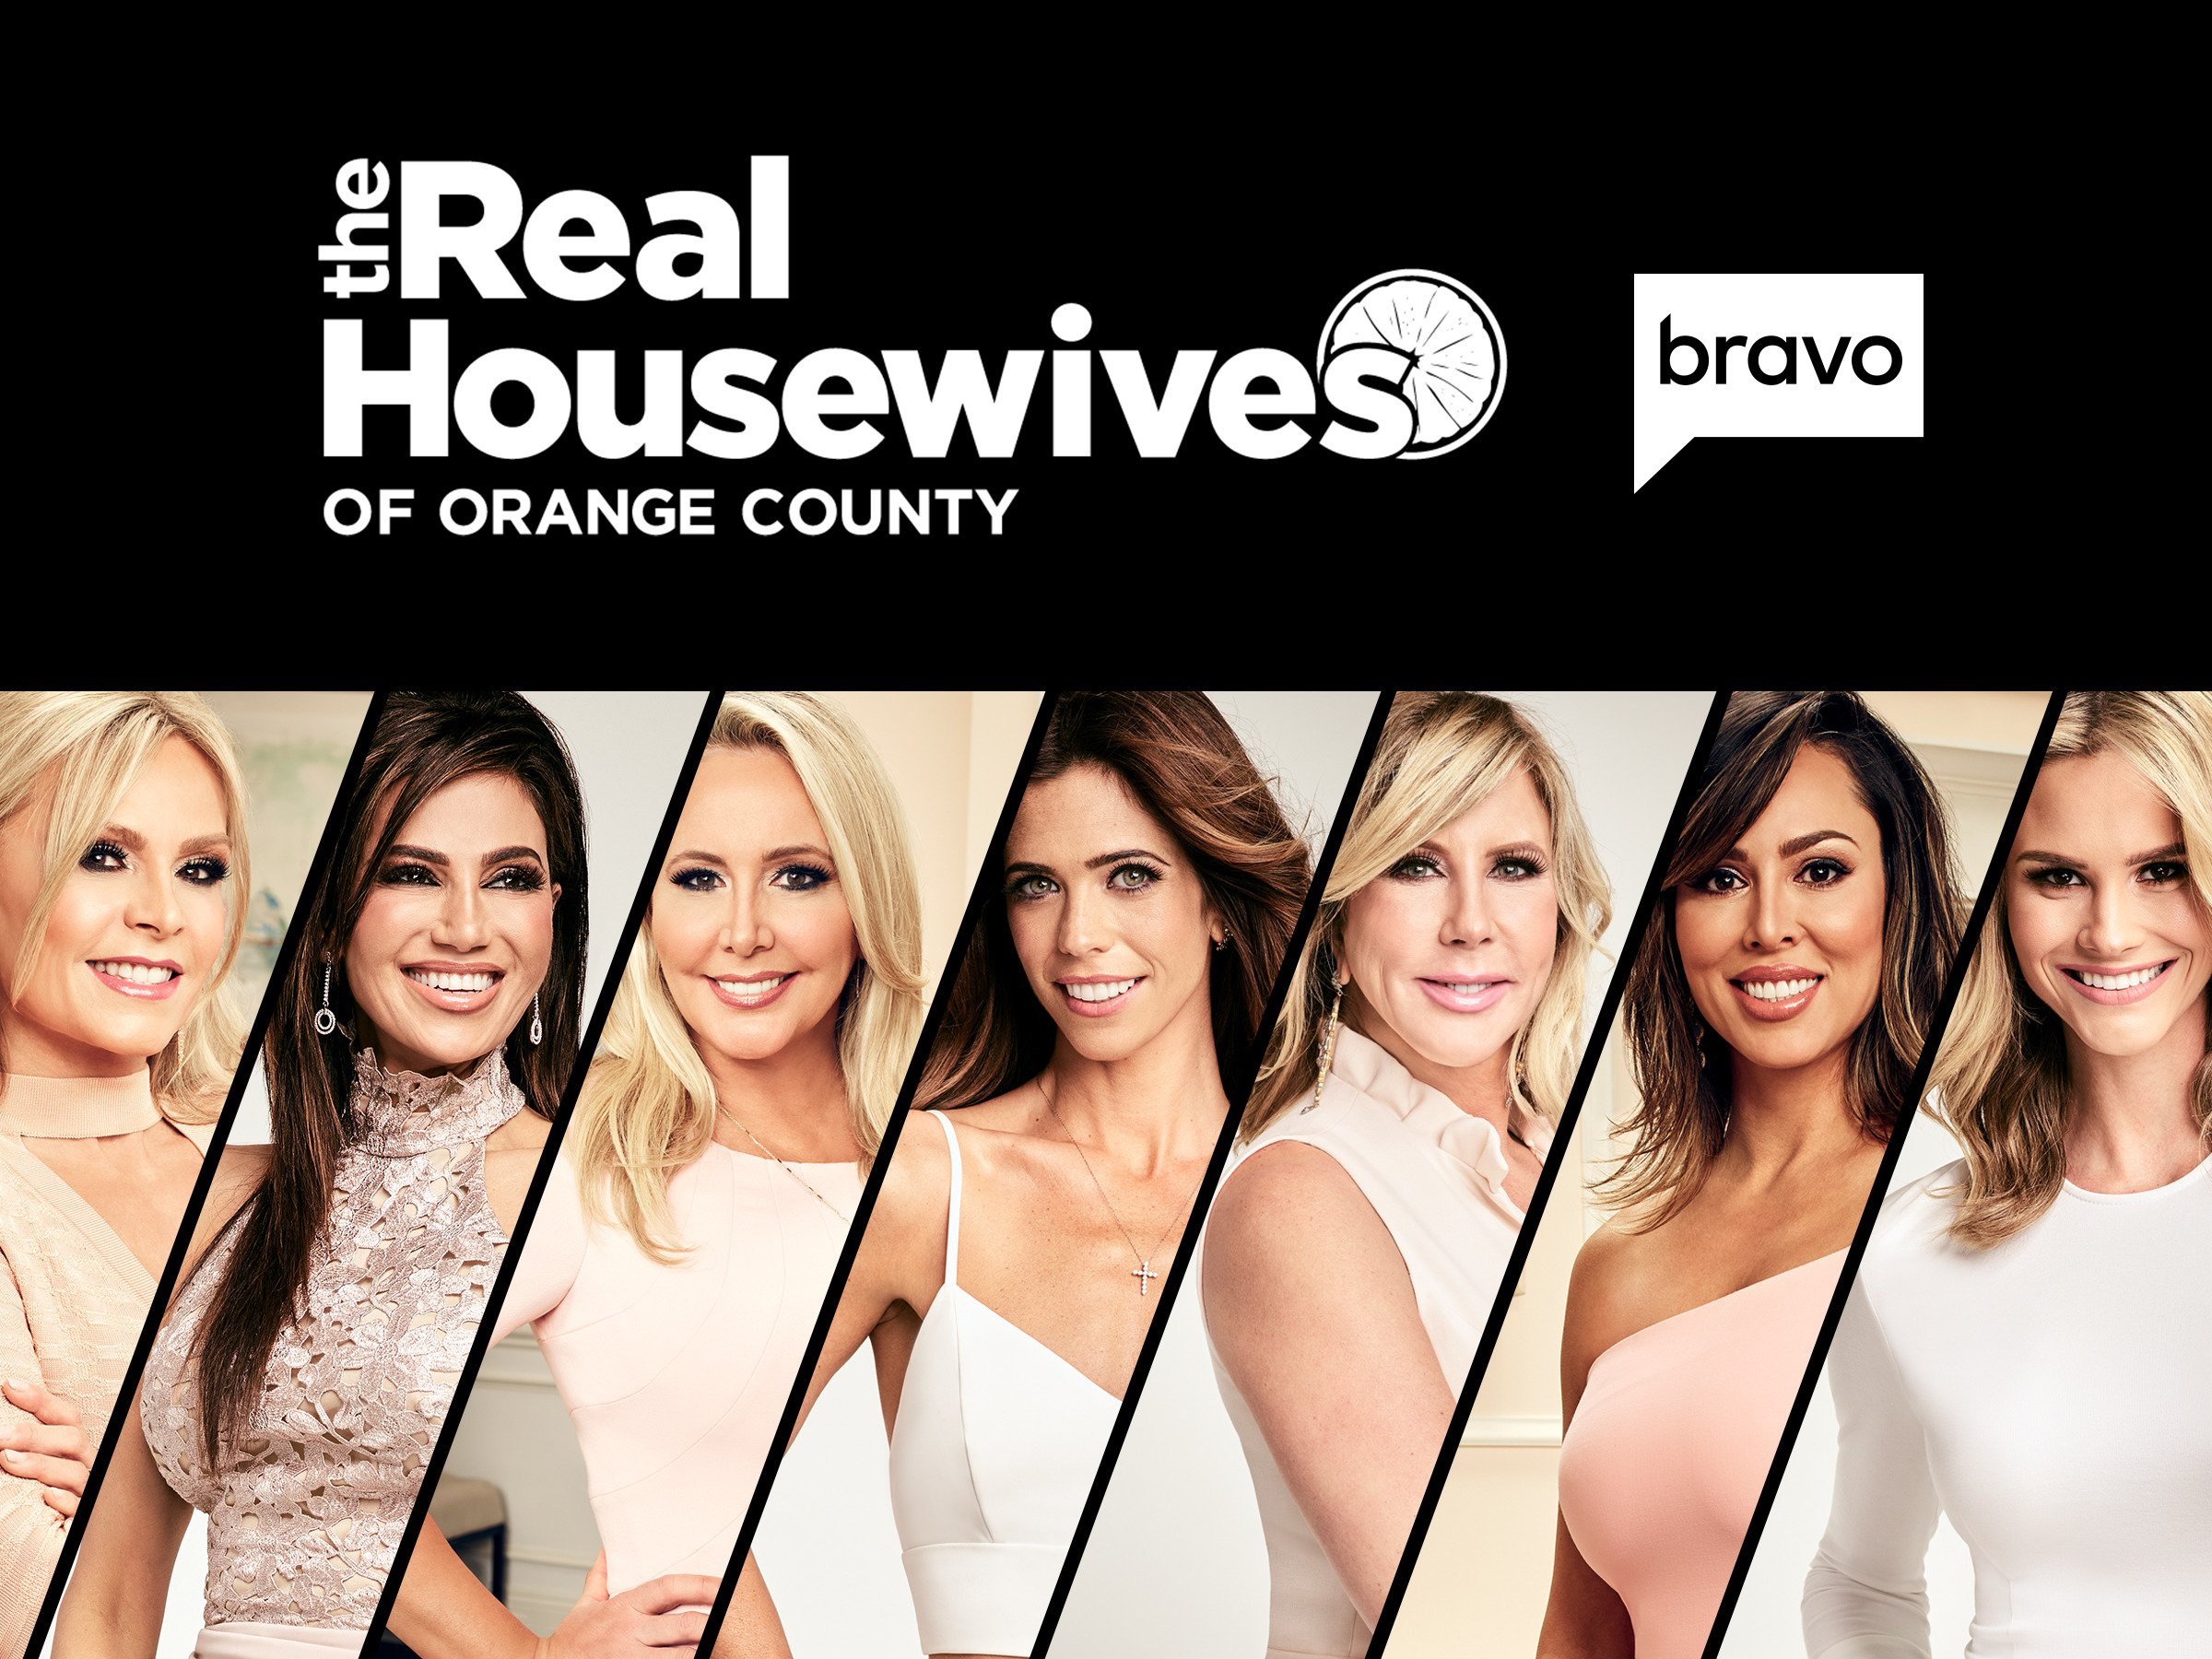 naked housewives of orange county